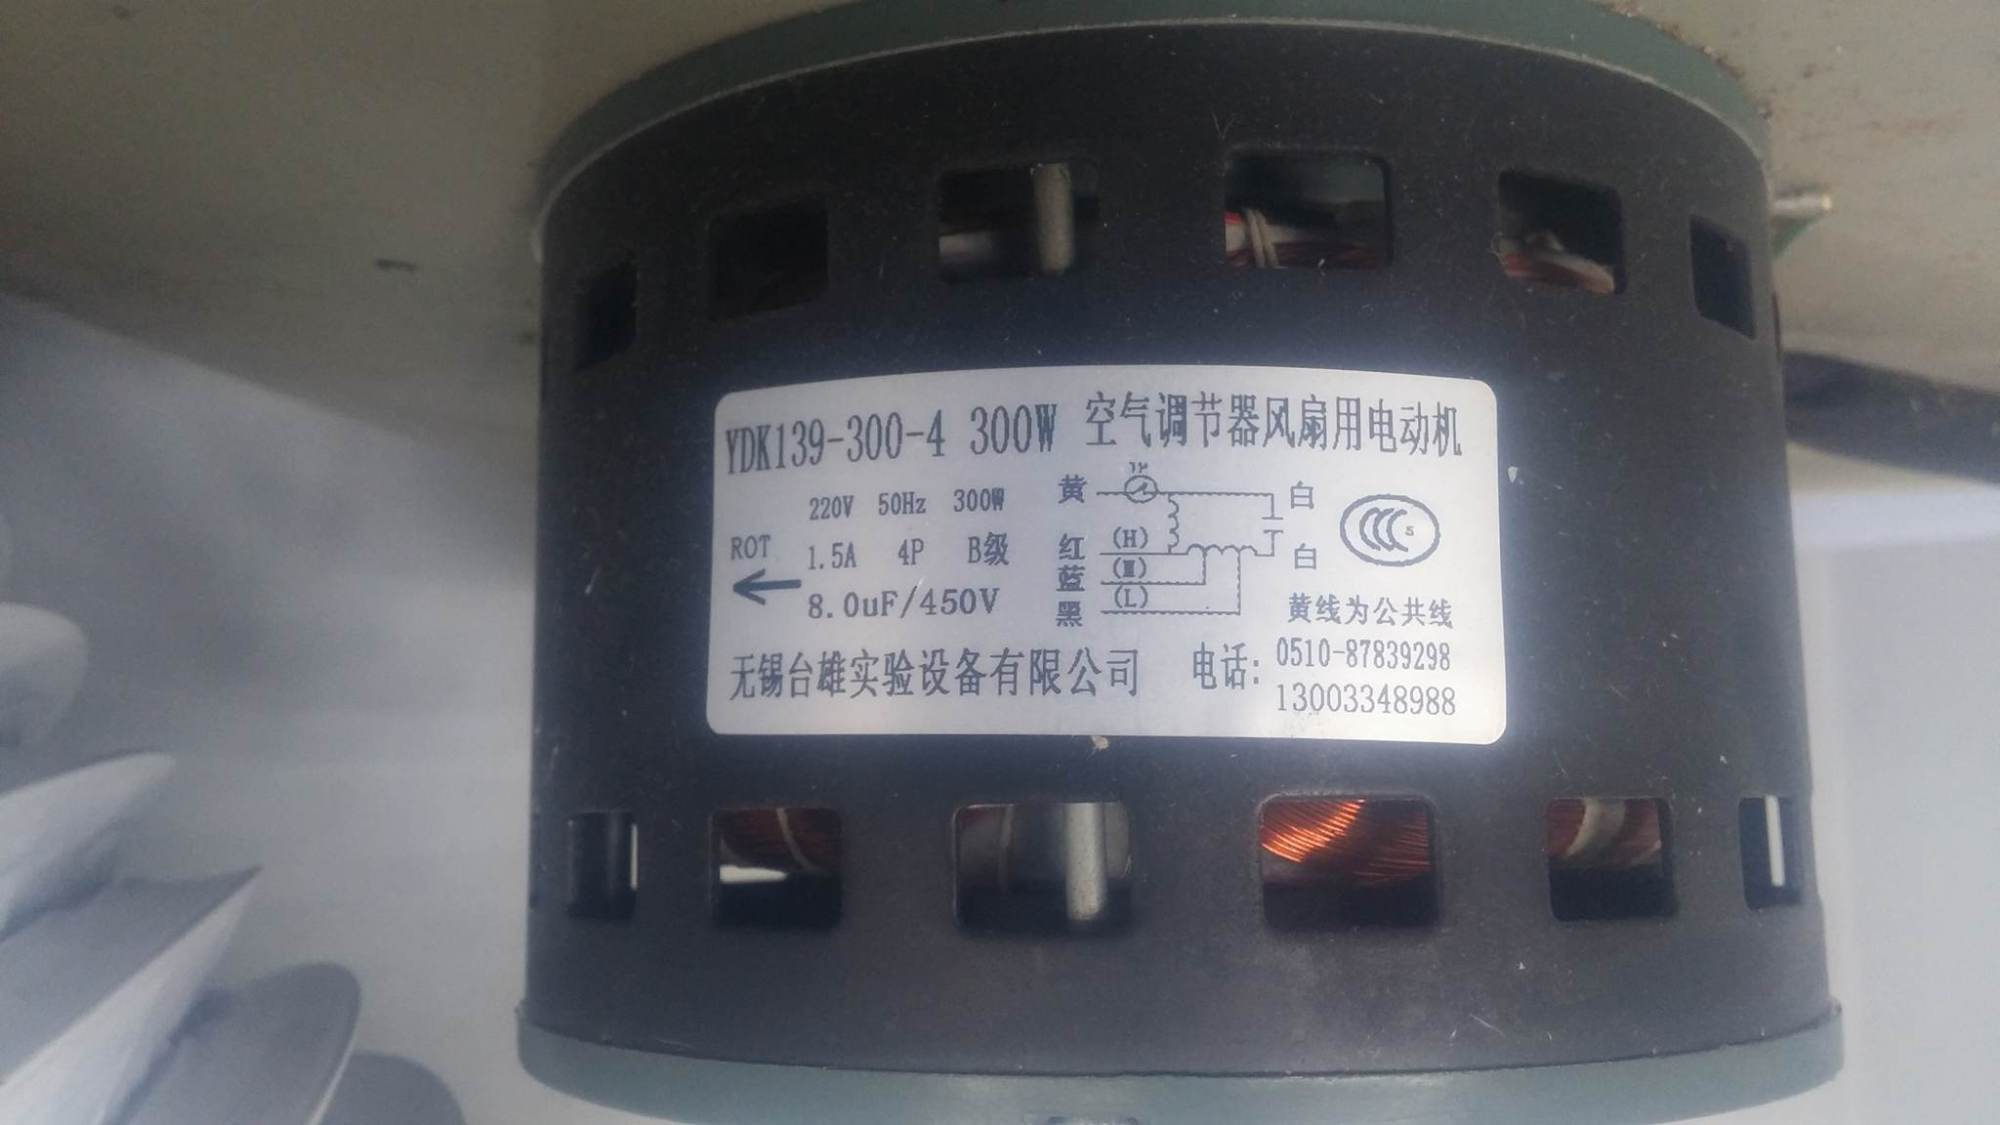 hight resolution of how to wire a 230vac motor with 4 wires model is ydk139 300 4 300w